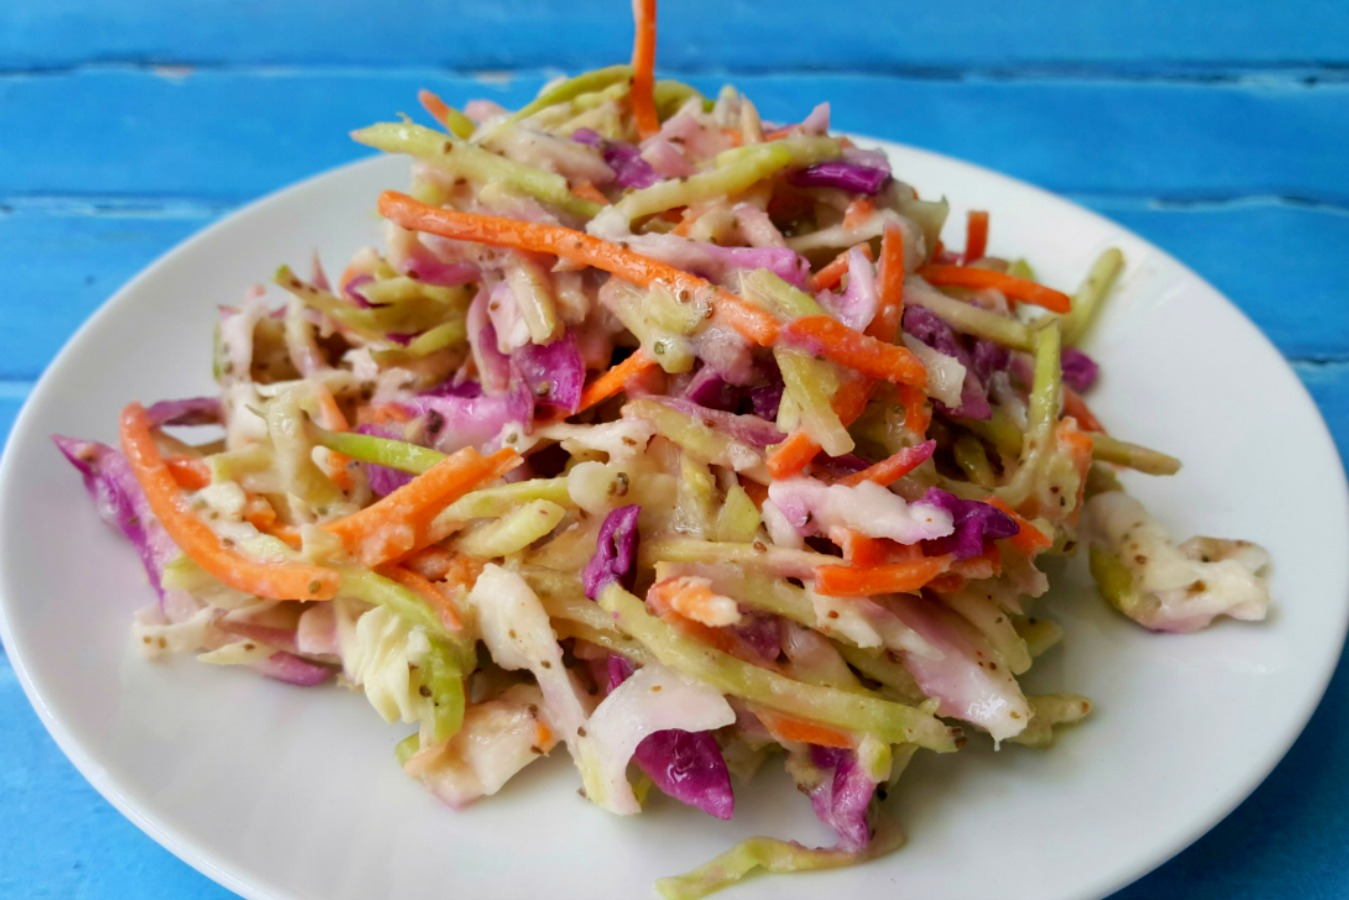 The hubs says this Kicked Up Coleslaw is the perfect recipe! It has the perfect amount of spice, sweet, and sour with the delicious crunch of broccoli slaw.